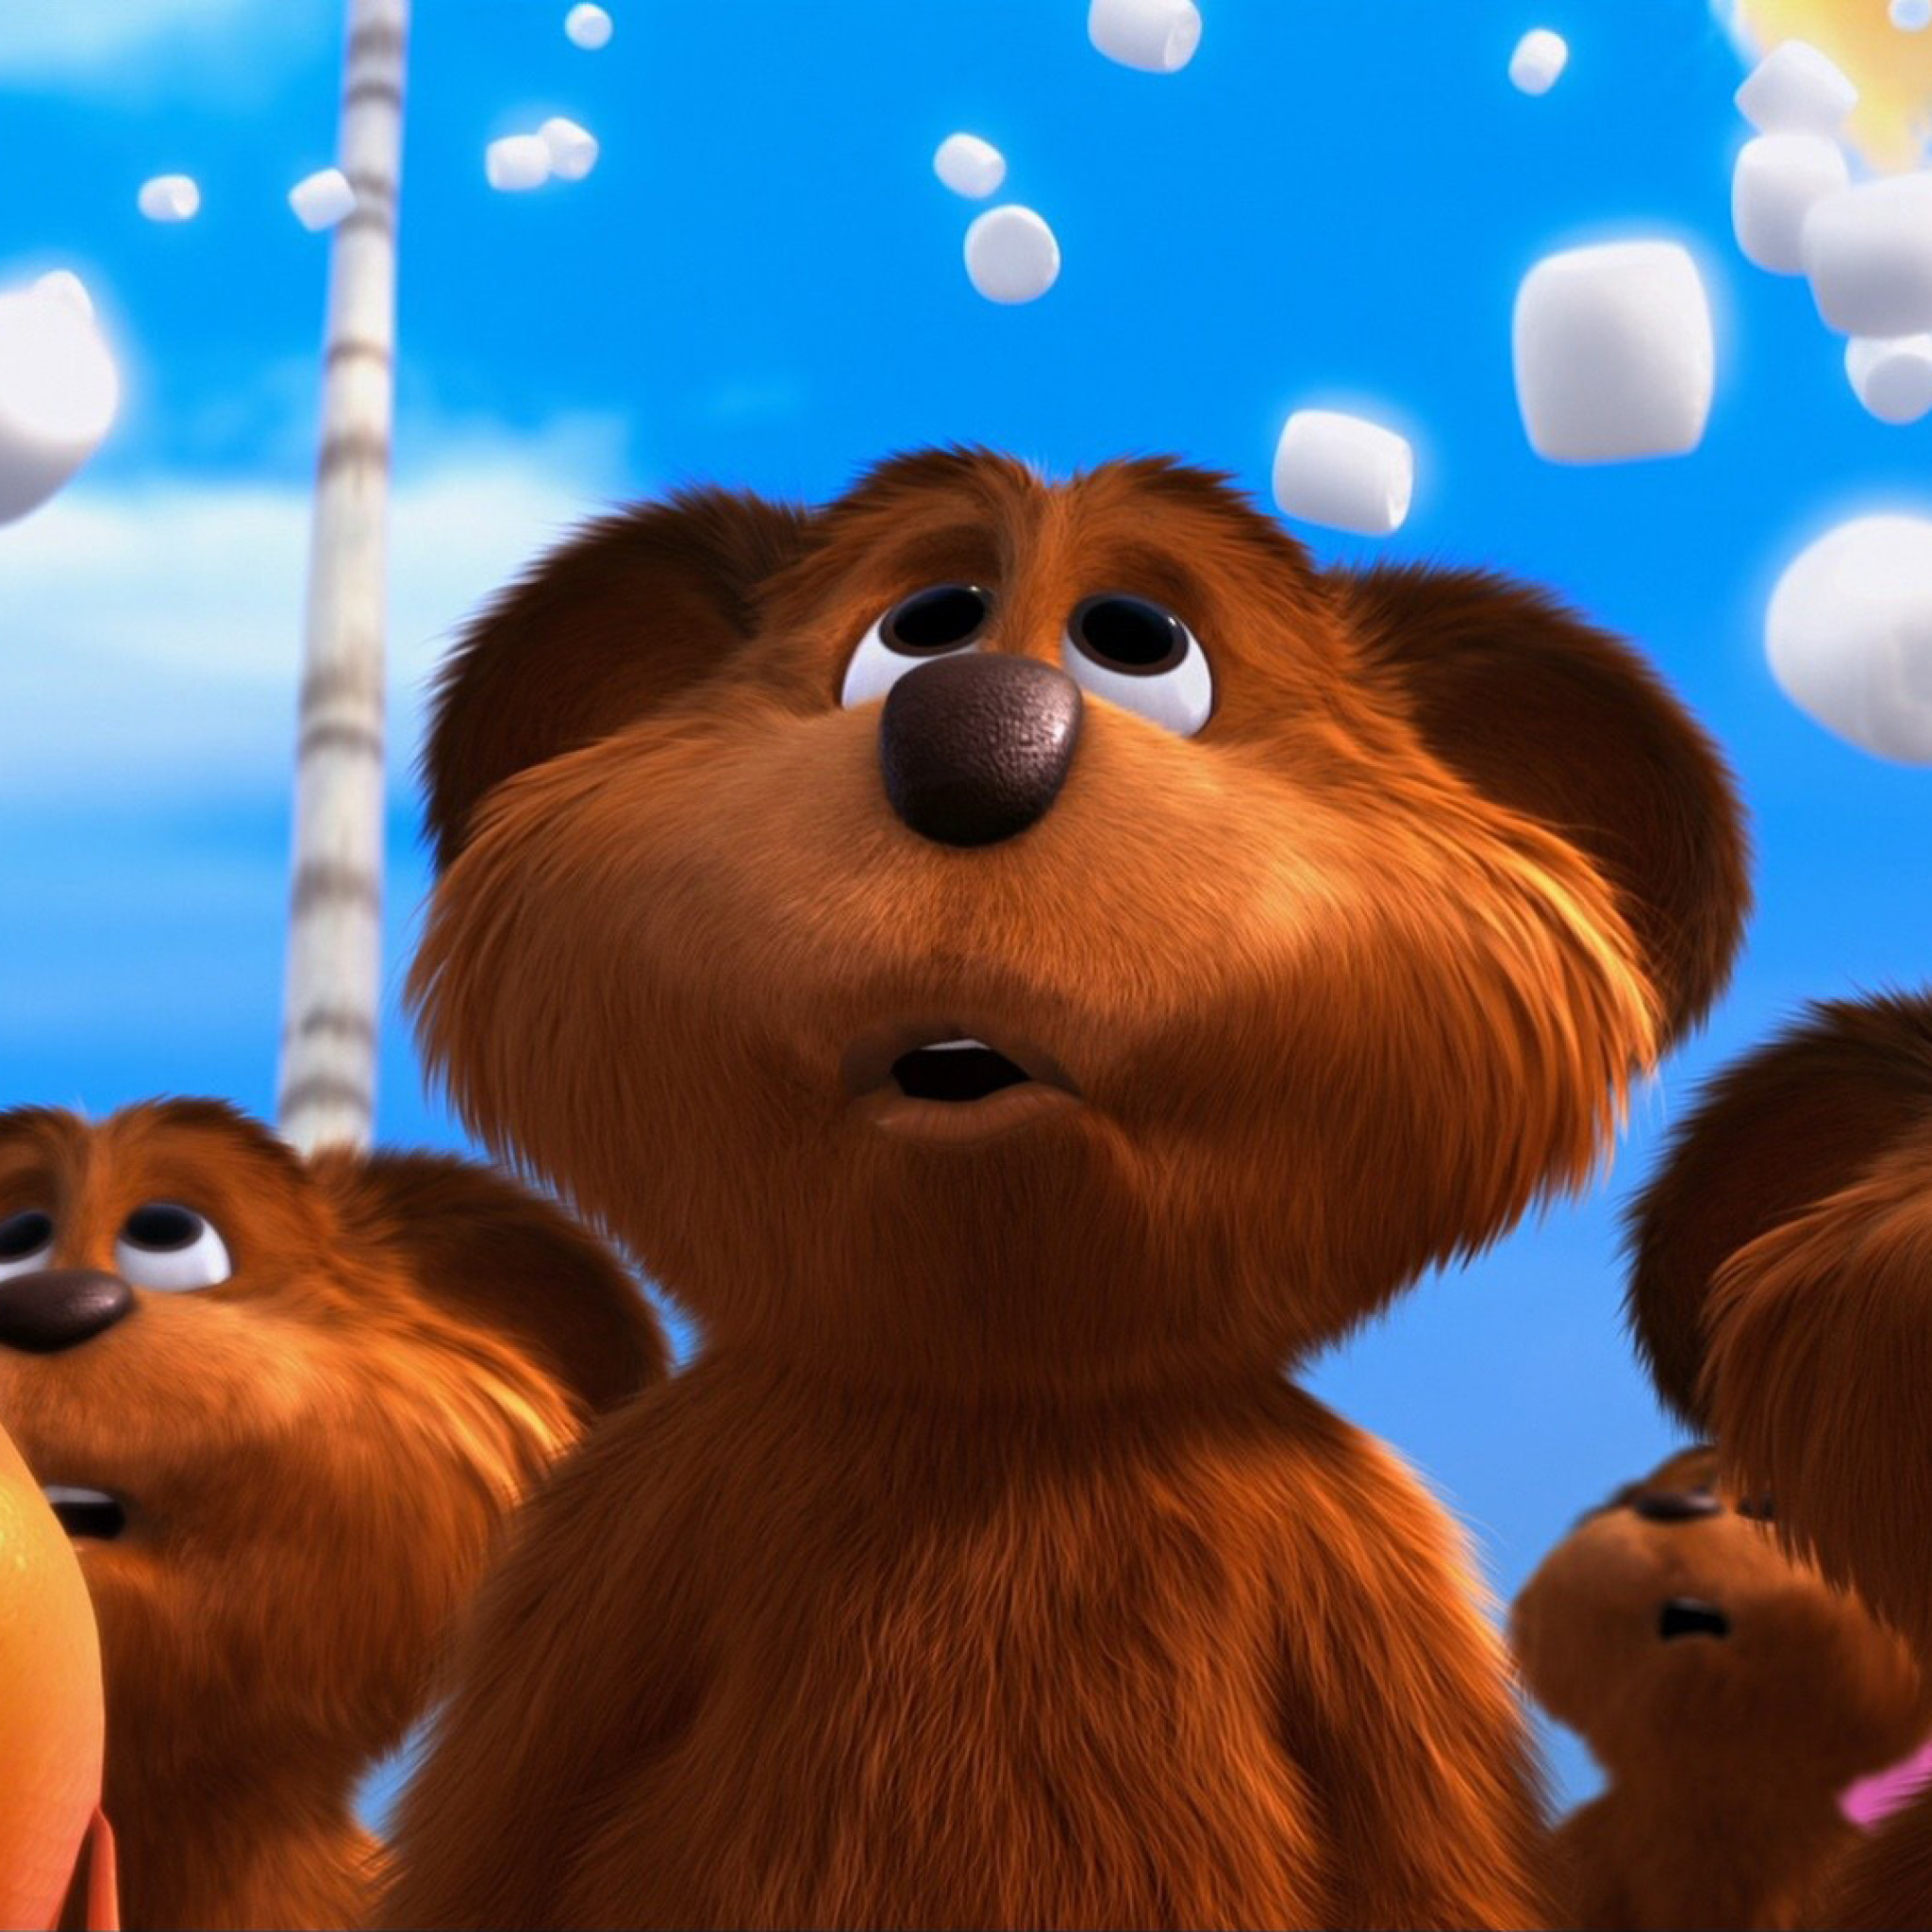 Dr Seuss The Lorax Full Movie In English: Dr Seuss And The Lorax Wallpaper For 2048x2048